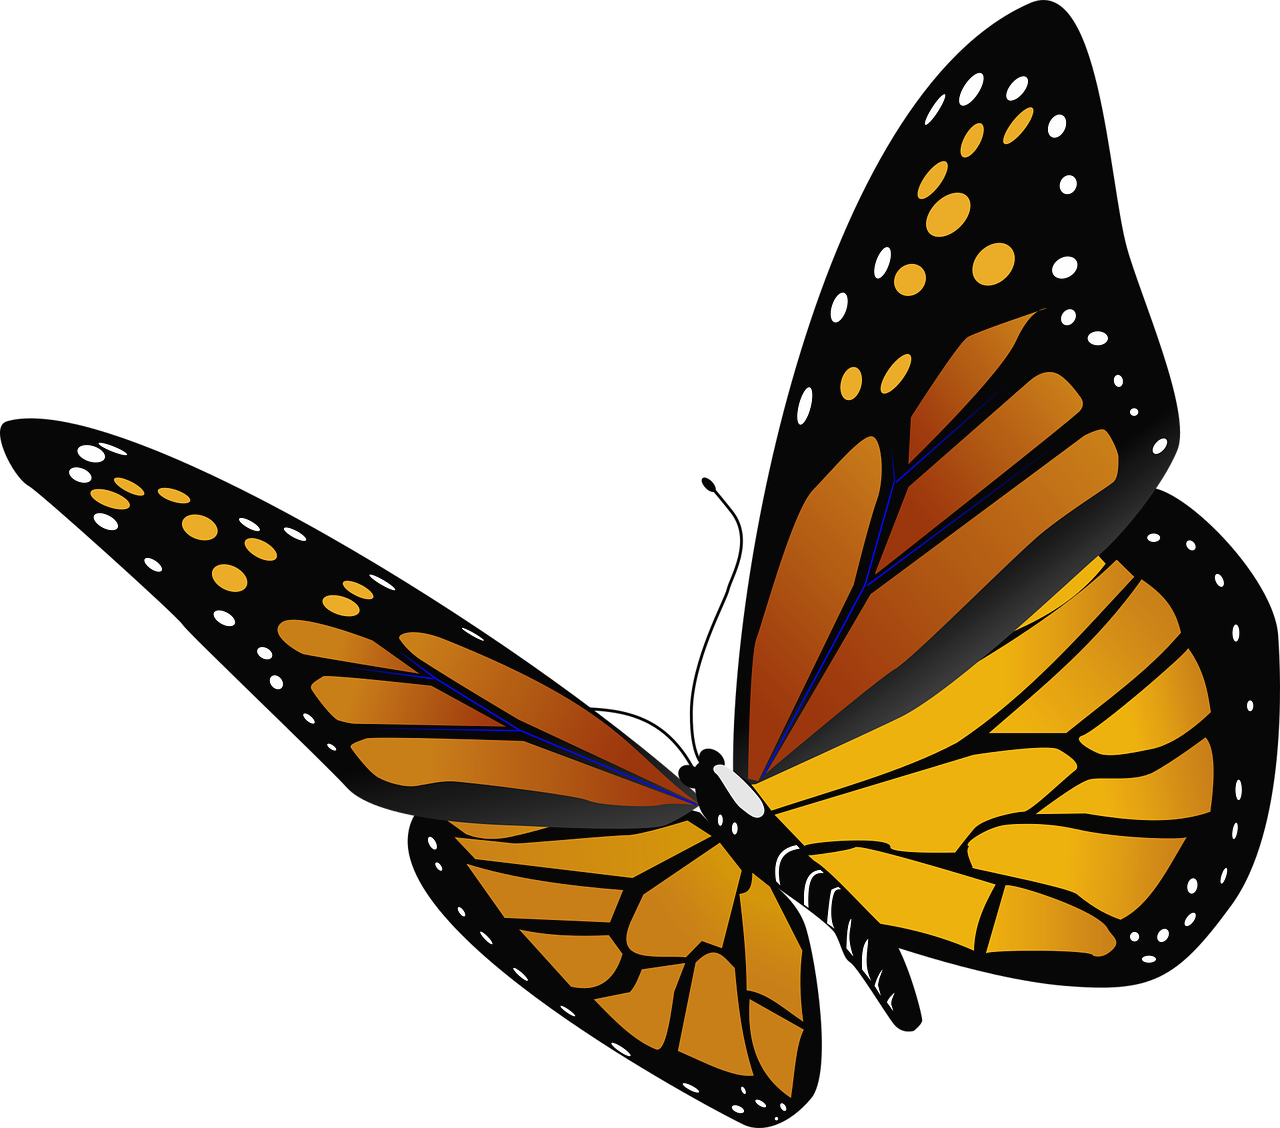 1280x1128 Monarchy Drawing Monarch Butterfly Frames Illustrations Hd